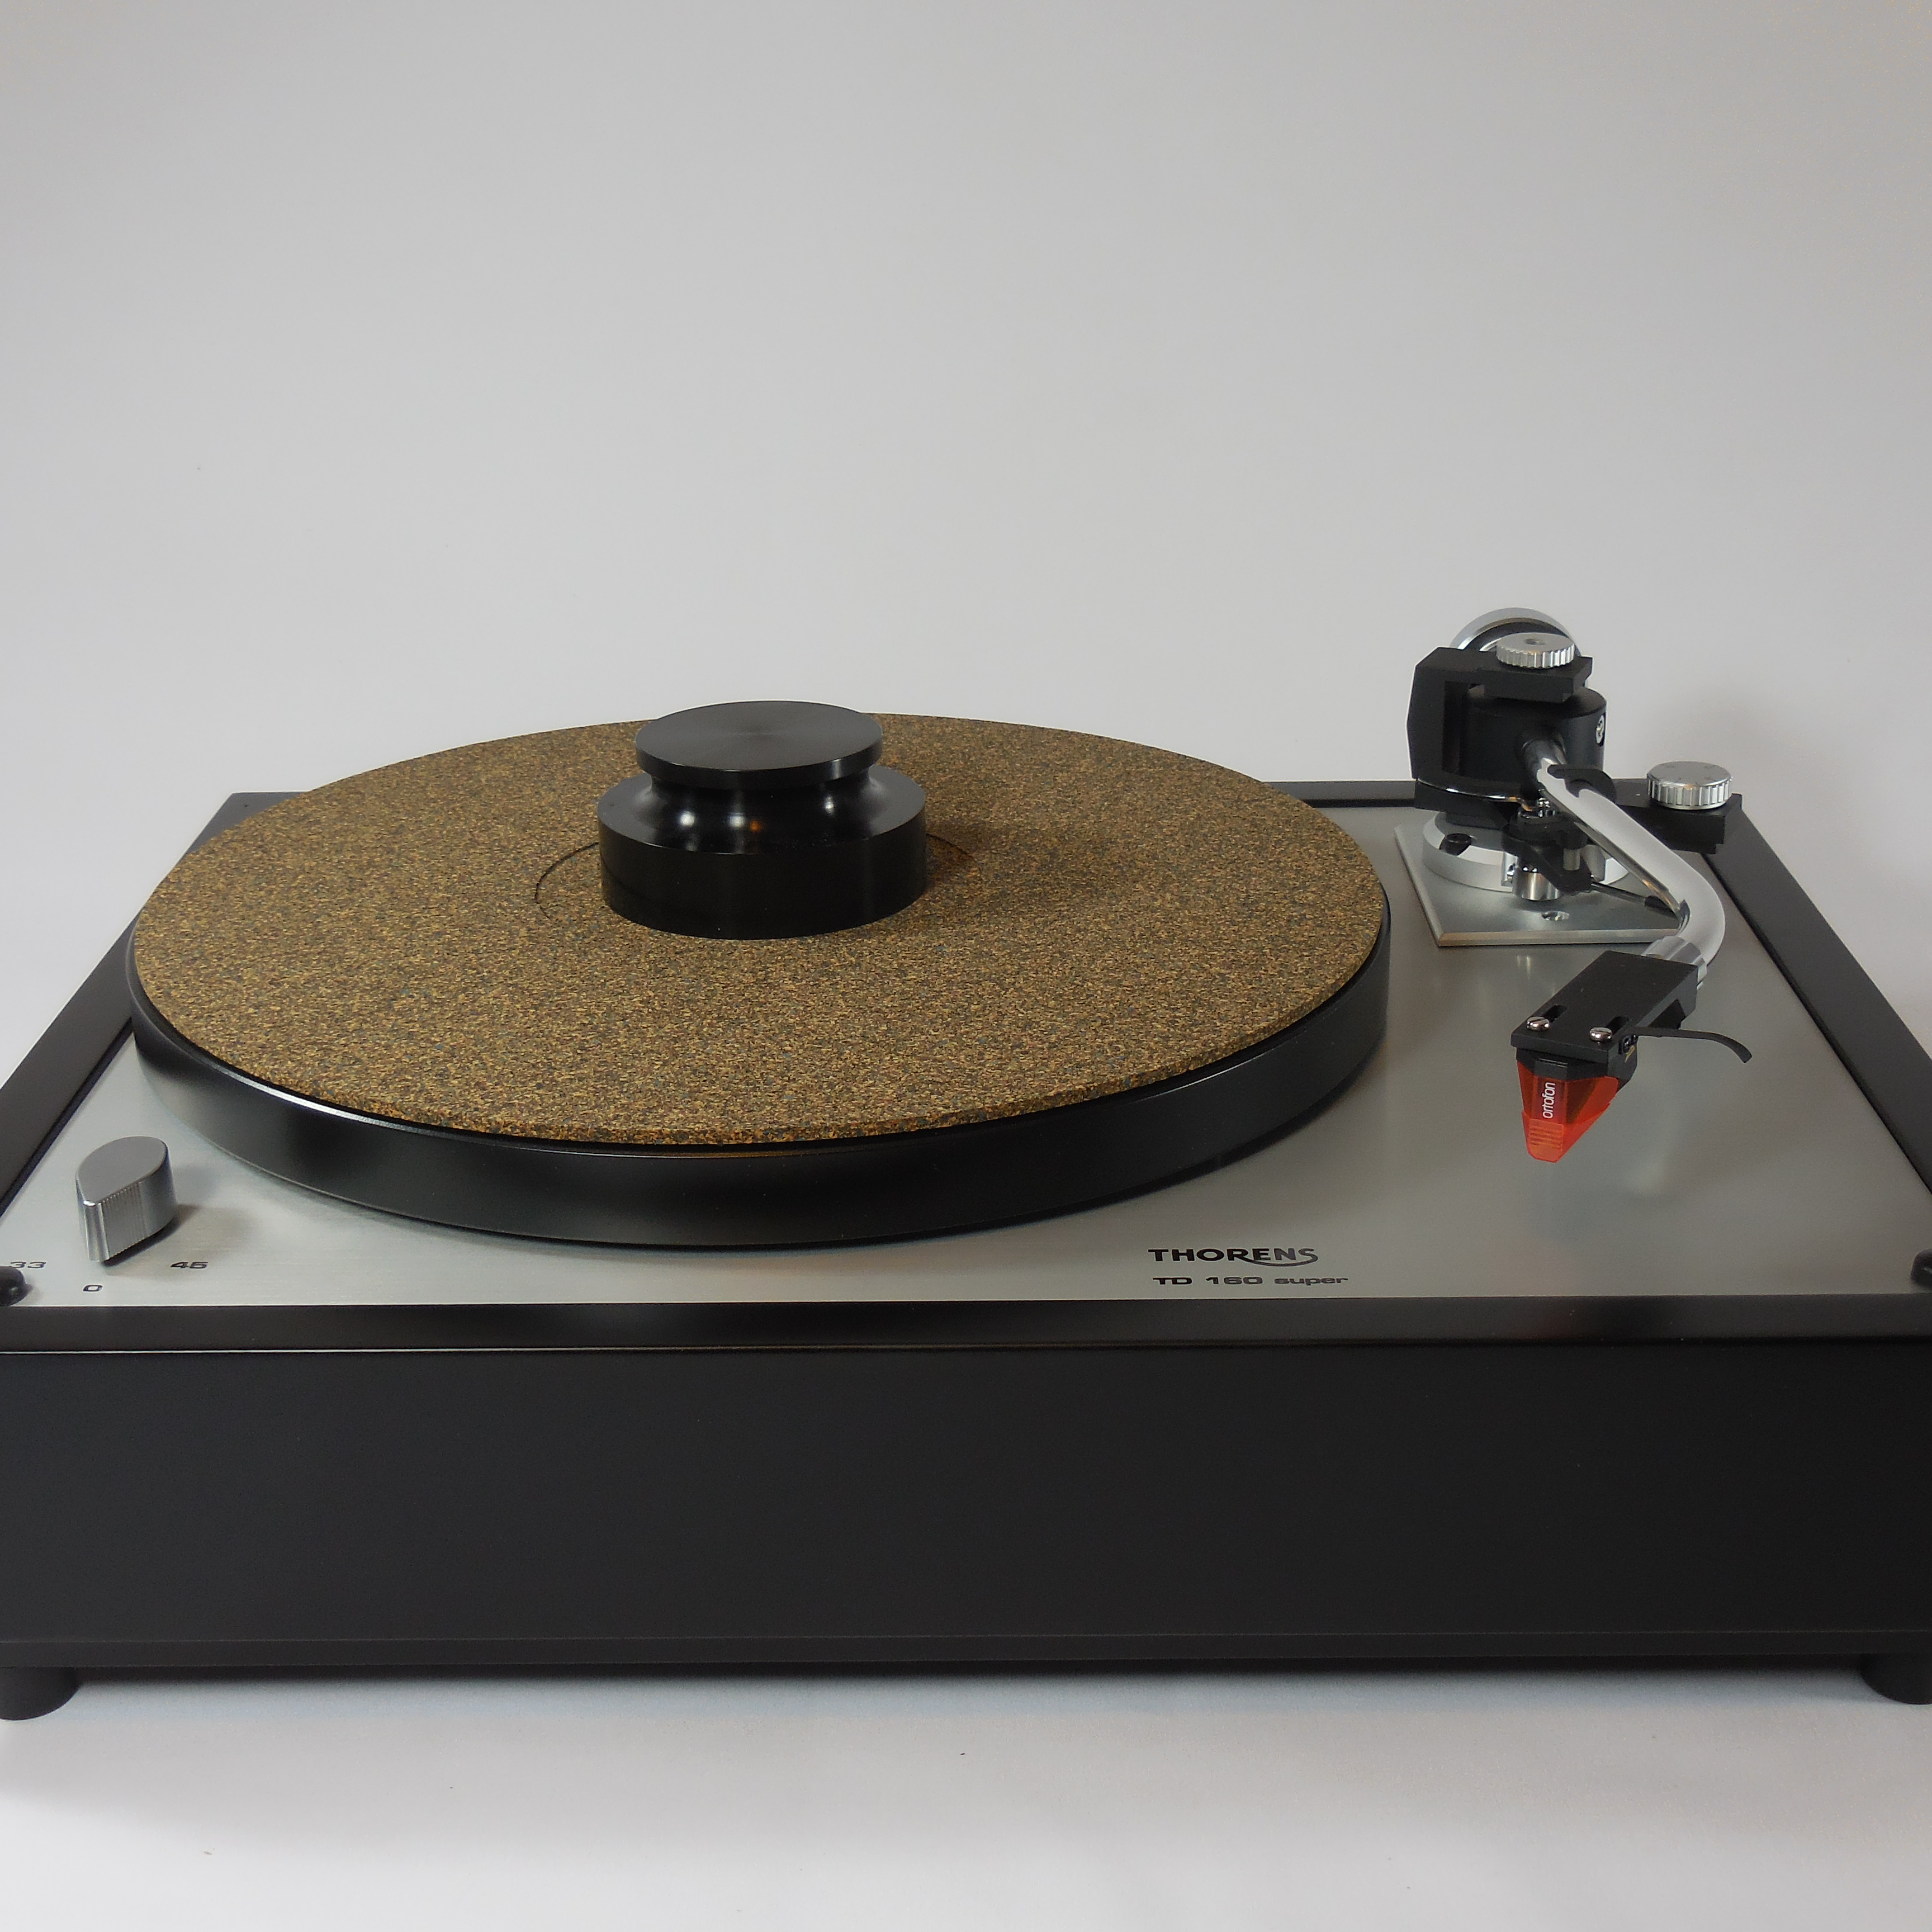 Stunning Thorens Td 160 Super Reproduction New Jelco 550s